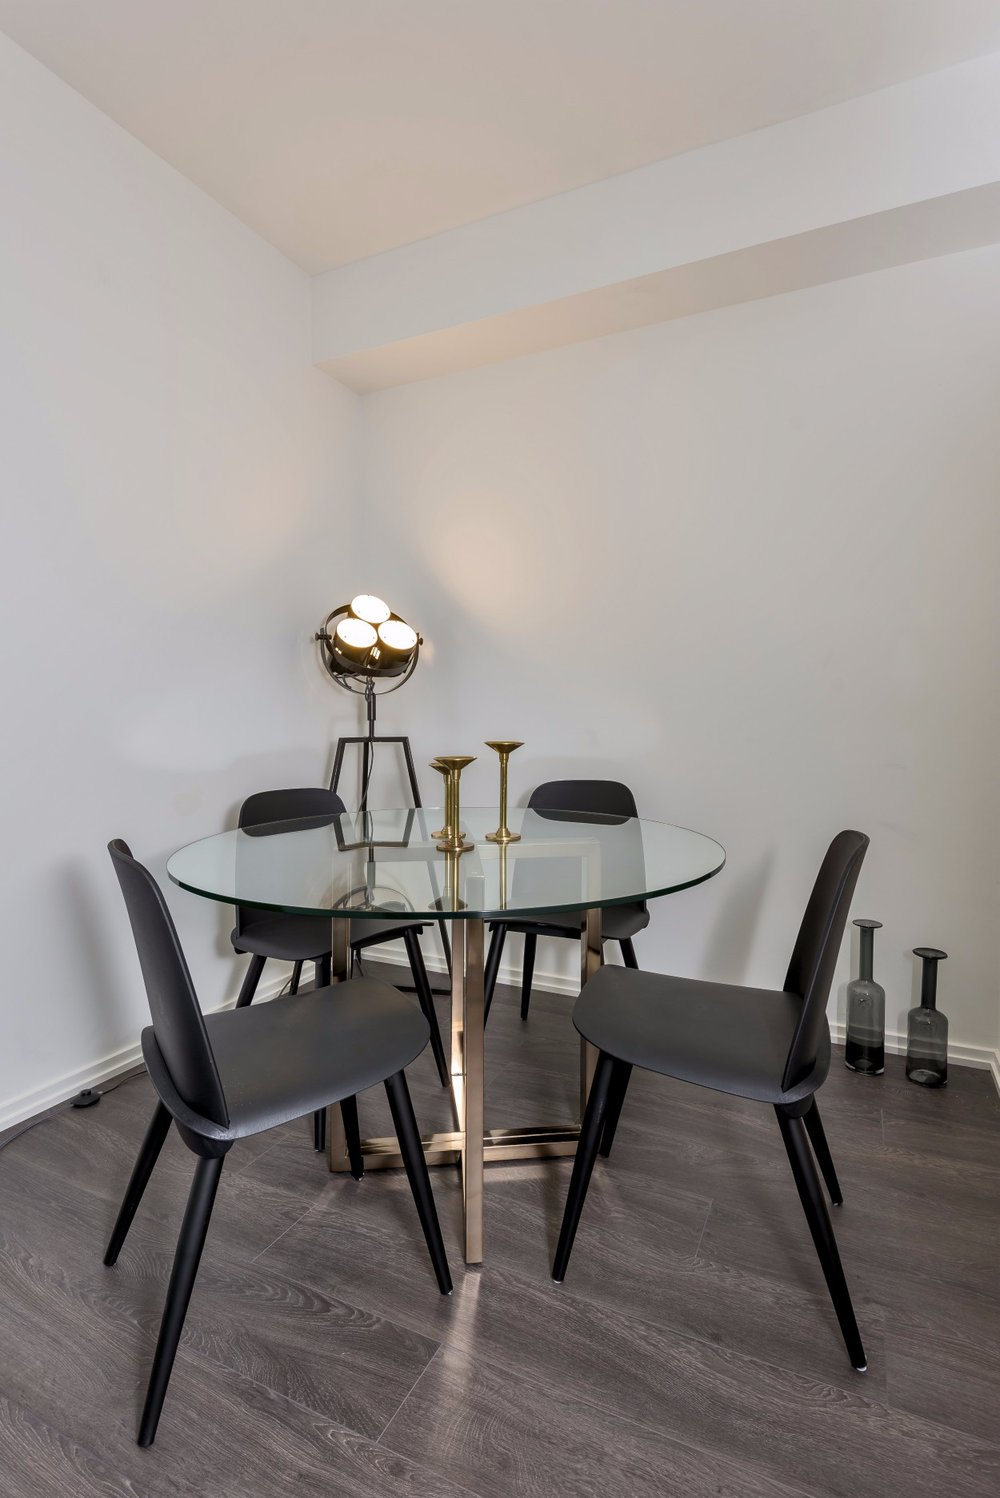 dining table, light, chairs